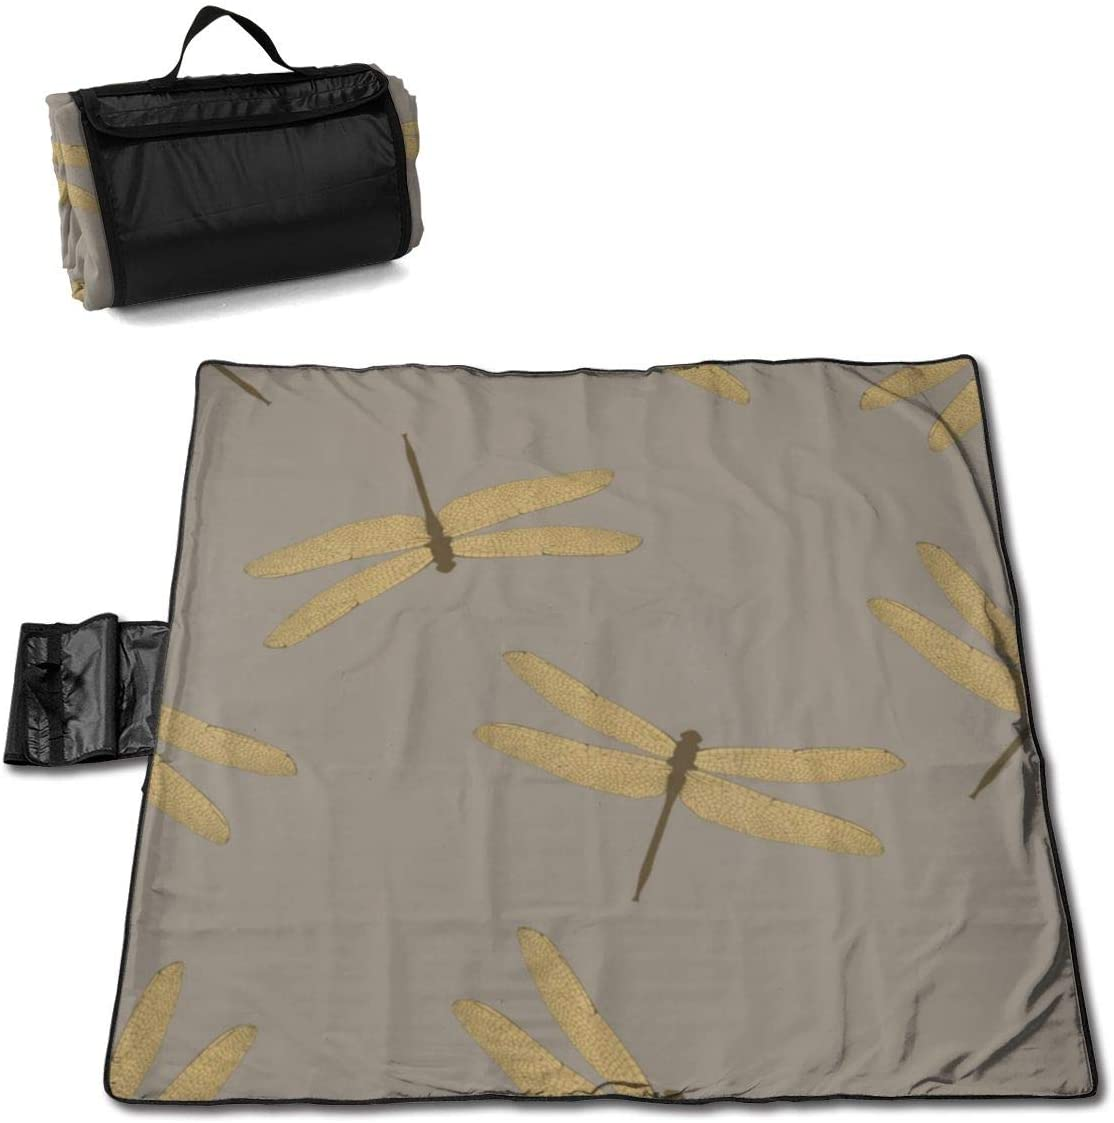 Beach Picnic Blanket Dragonflies Fashion Waterproof Extra Large Outdoor Handy Mat Sand Proof Camping Travelling Accessories Portable Family Tote On Grass Outings Quick Dry Bag